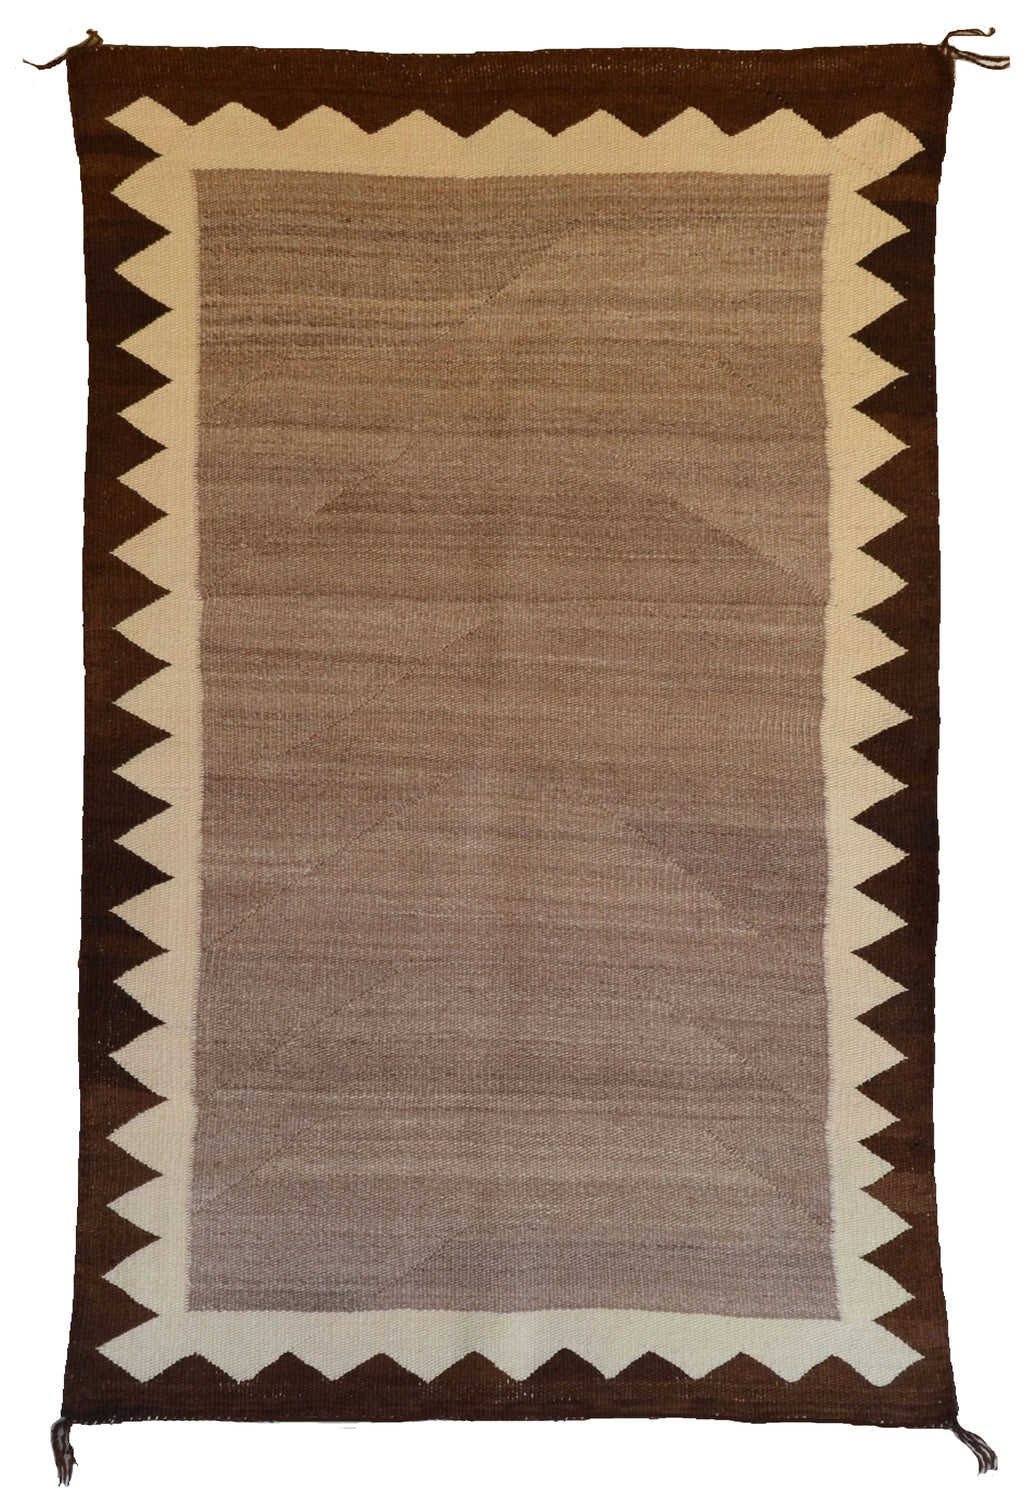 "HOLD - Saddle Blanket - Double Navajo Weaving : Historic : GHT 2013 : 30"" x 54"" - Getzwiller's Nizhoni Ranch Gallery"